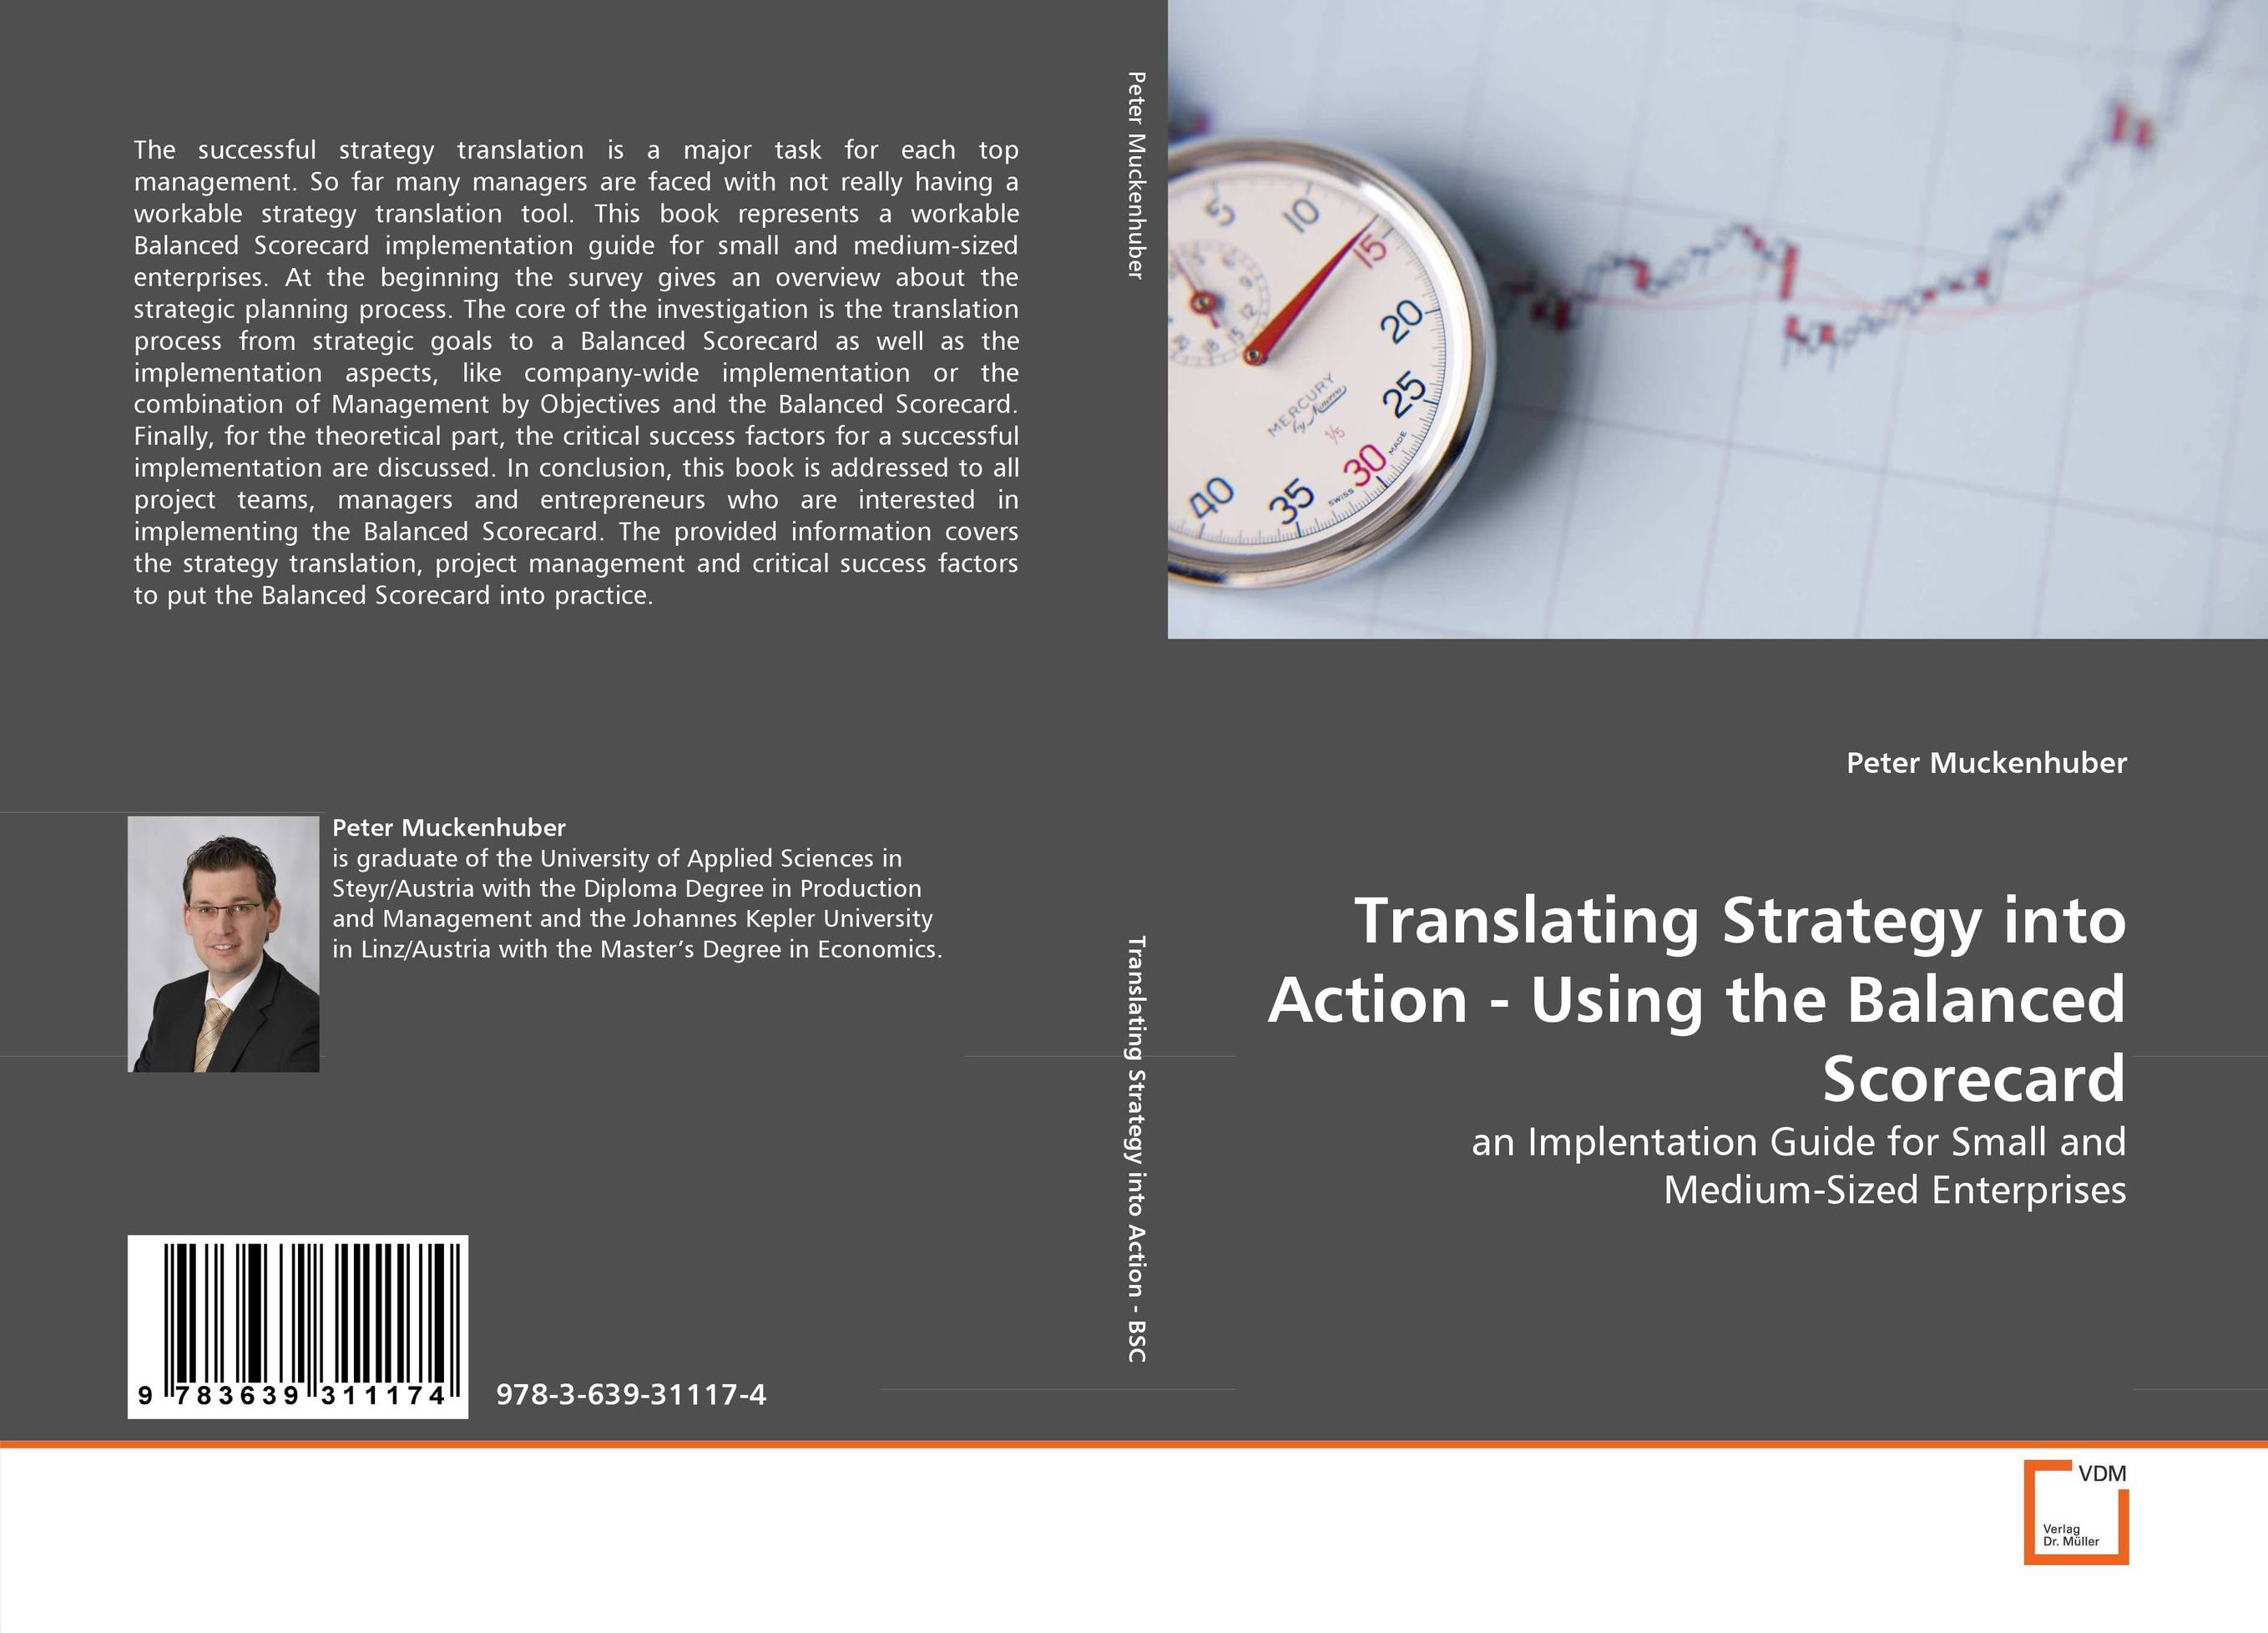 Translating Strategy into Action - Using the Balanced Scorecard mohan nair essentials of balanced scorecard